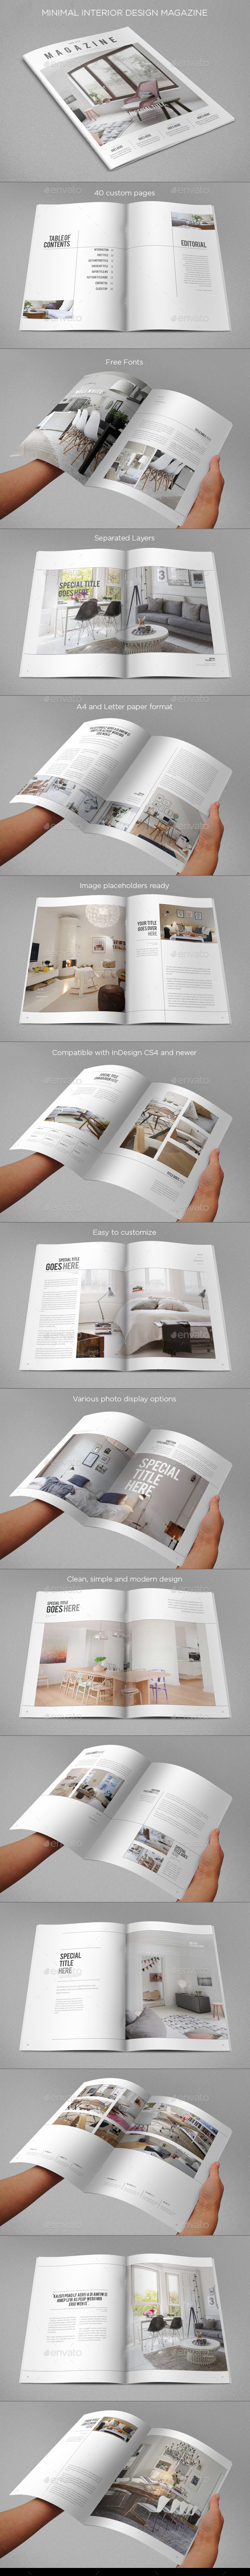 GraphicRiver Minimal Interior Design Magazine 9499179